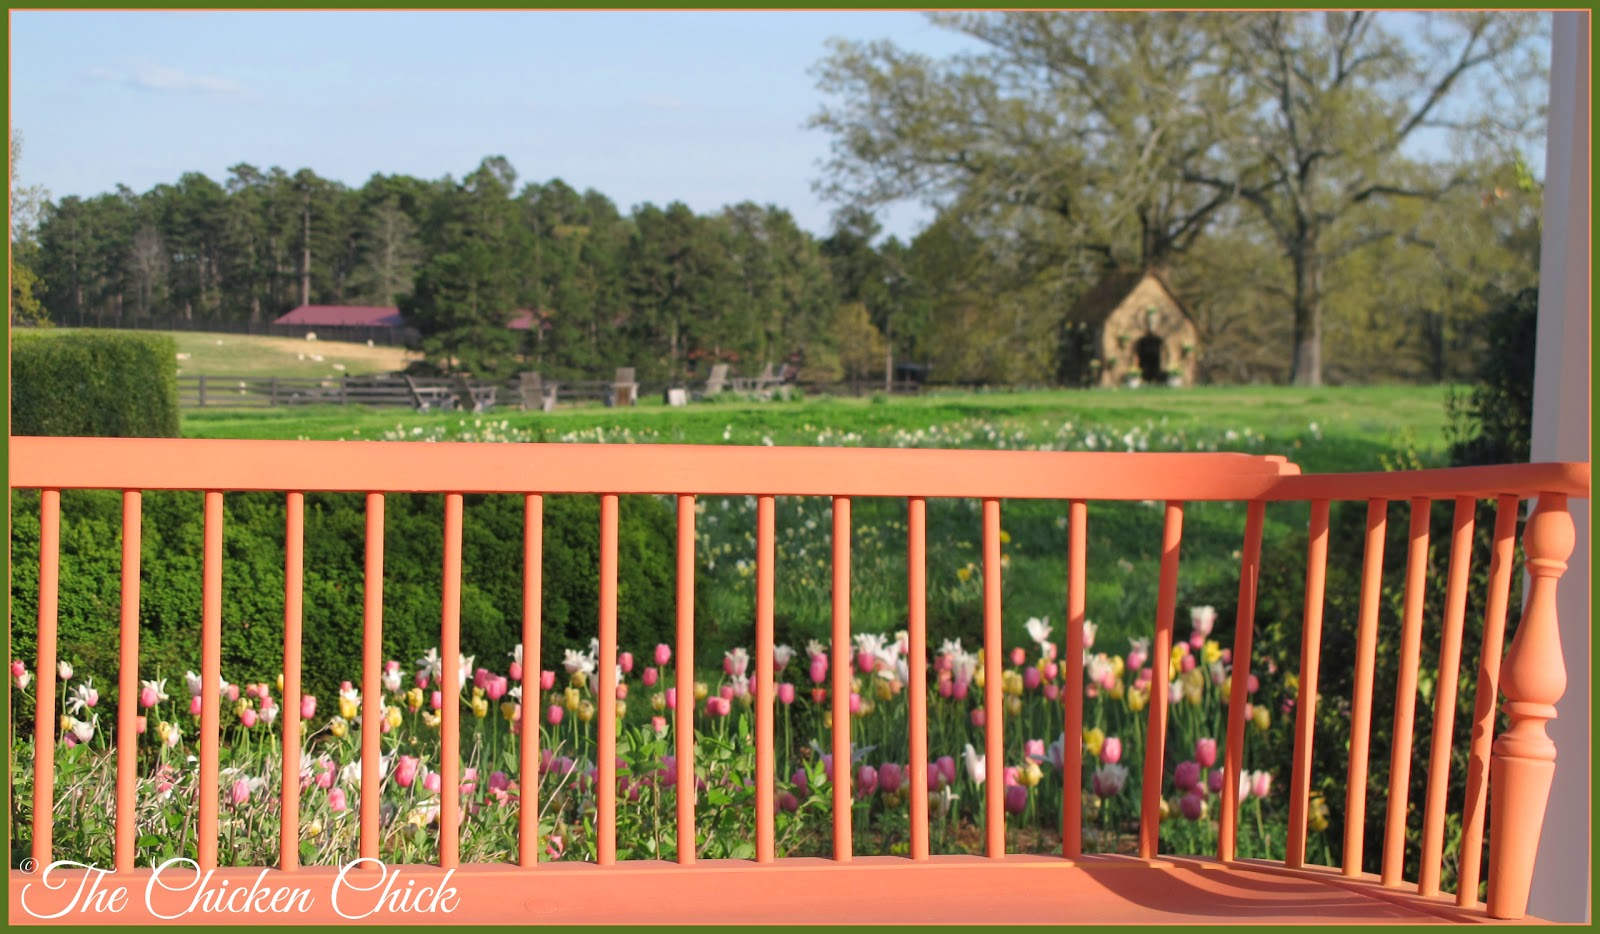 This view is from the porch of the Garden home, looking out over the sheep pasture, the waterfowl park and Poultryville (the red roofed structure in the distance).